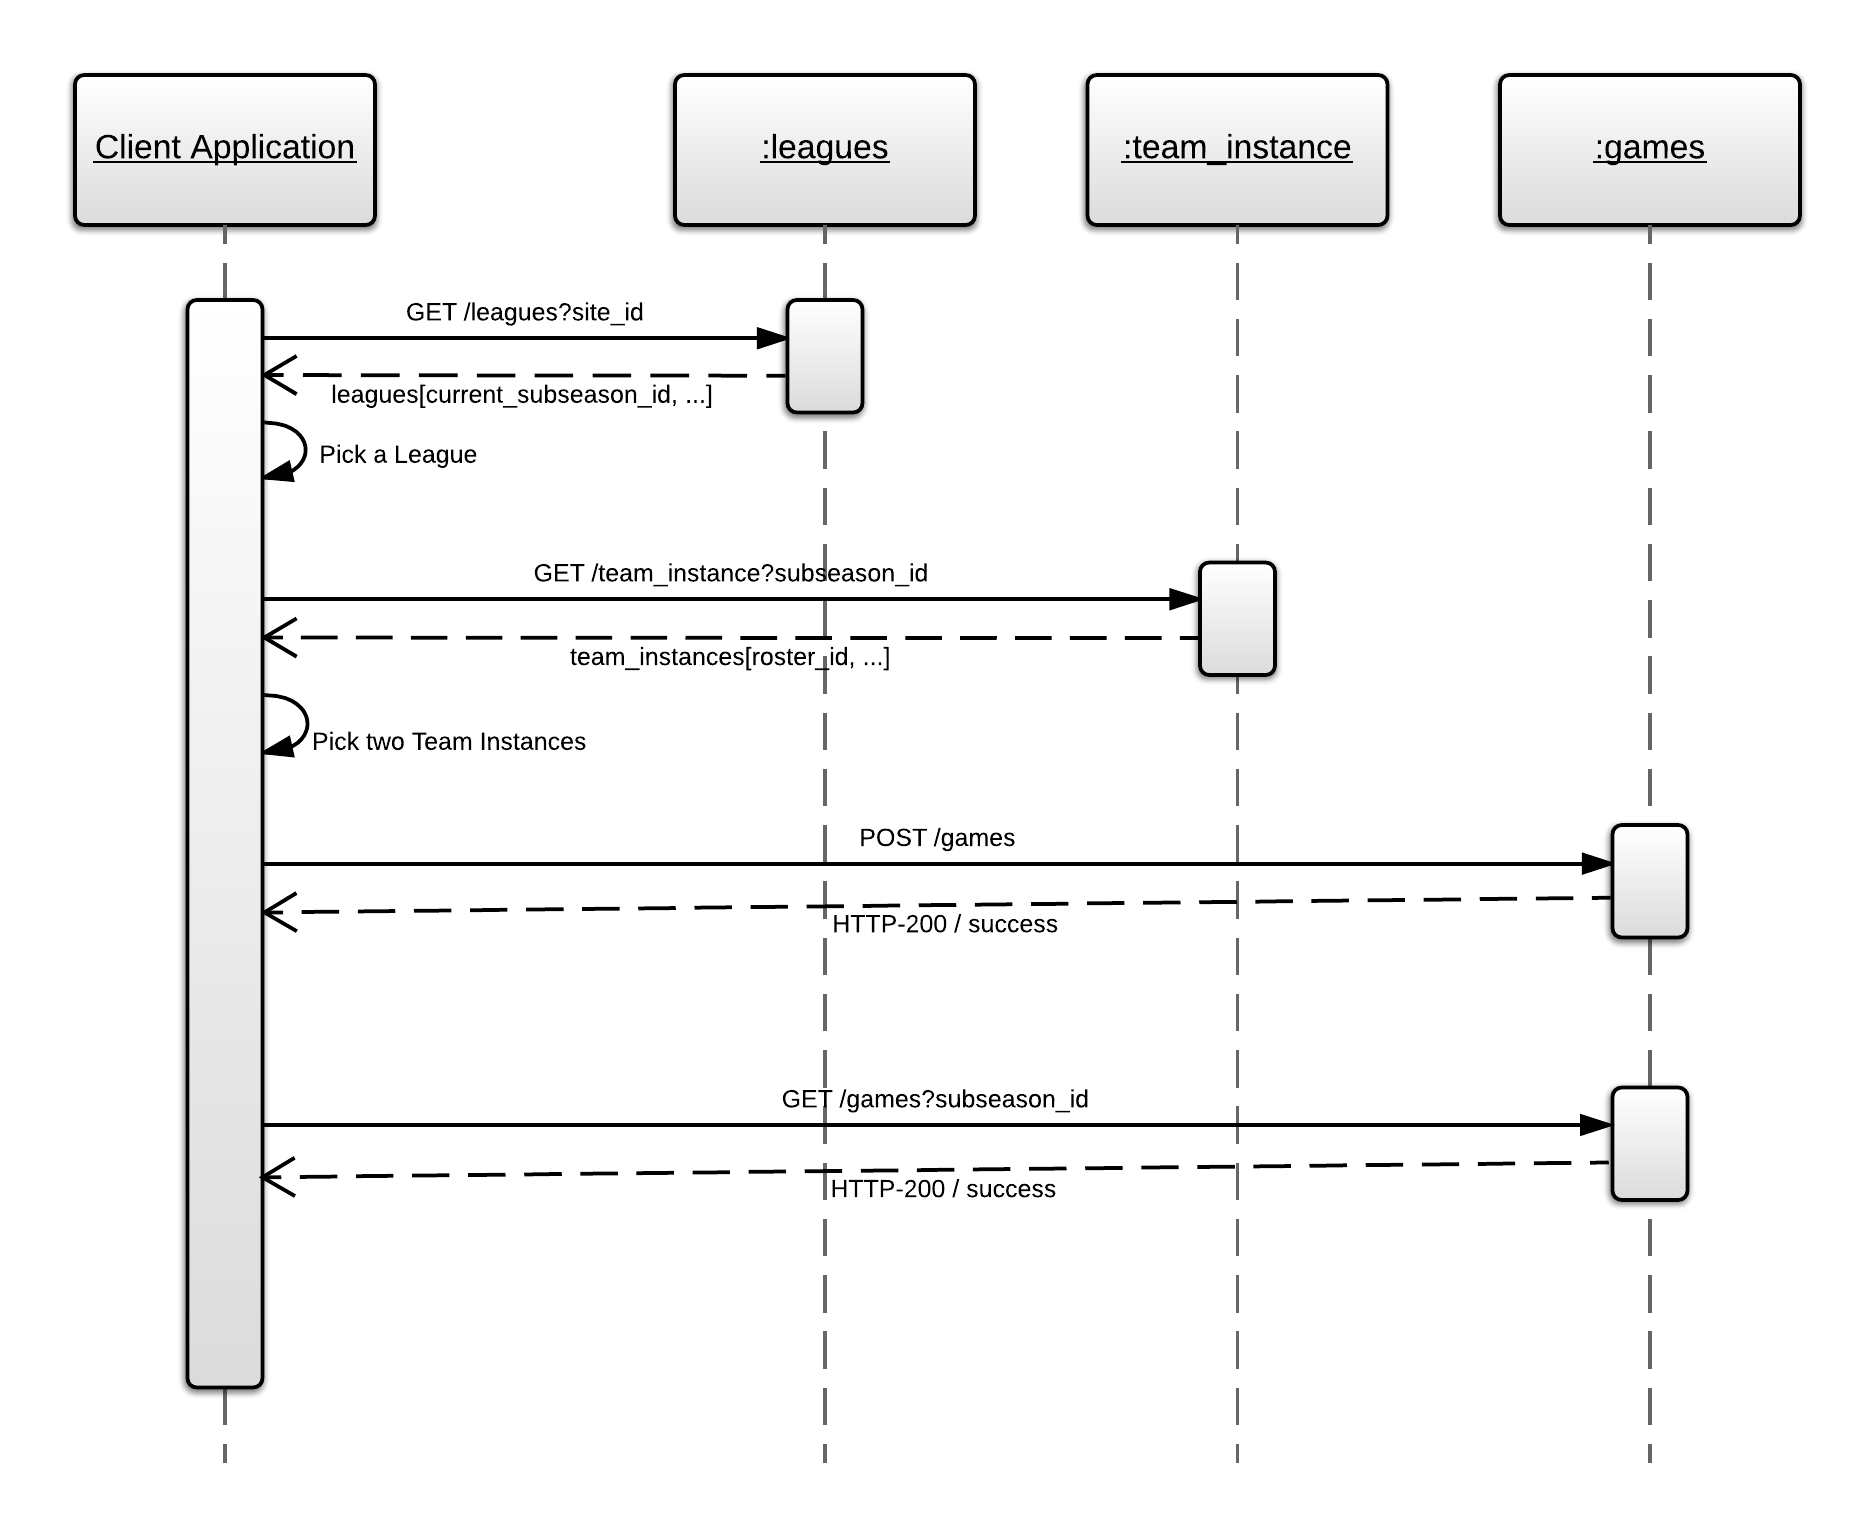 Managing events and games sportsengine api workflows ccuart Gallery